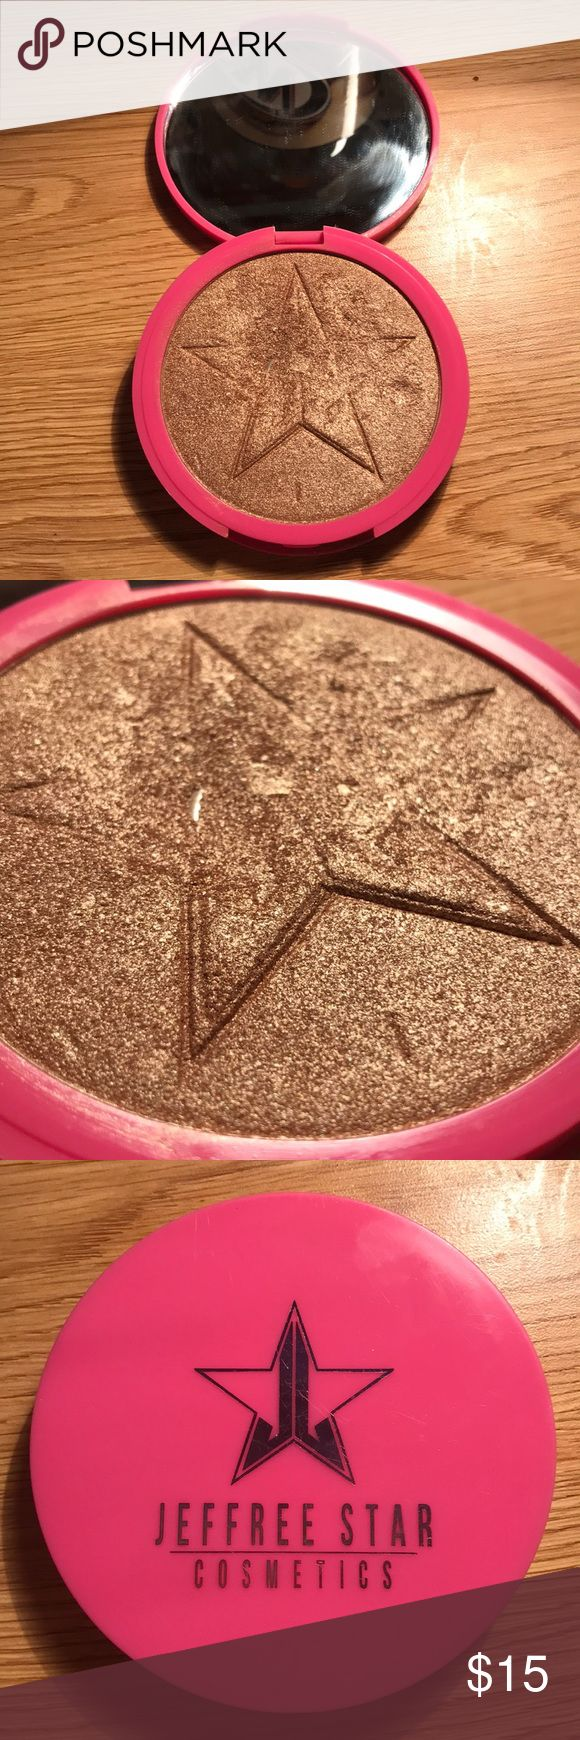 Jeffree Star Cosmetics SkinFrost in King Tut Used until people informed me it was too dark for my skin. Hit pan in one portion and one chunk missing because of dropping (also why compact is wiggly). Still a lot of product to spare and usable for someone who would find it more flattering. Dying to get rid of! Jeffree Star Makeup Luminizer